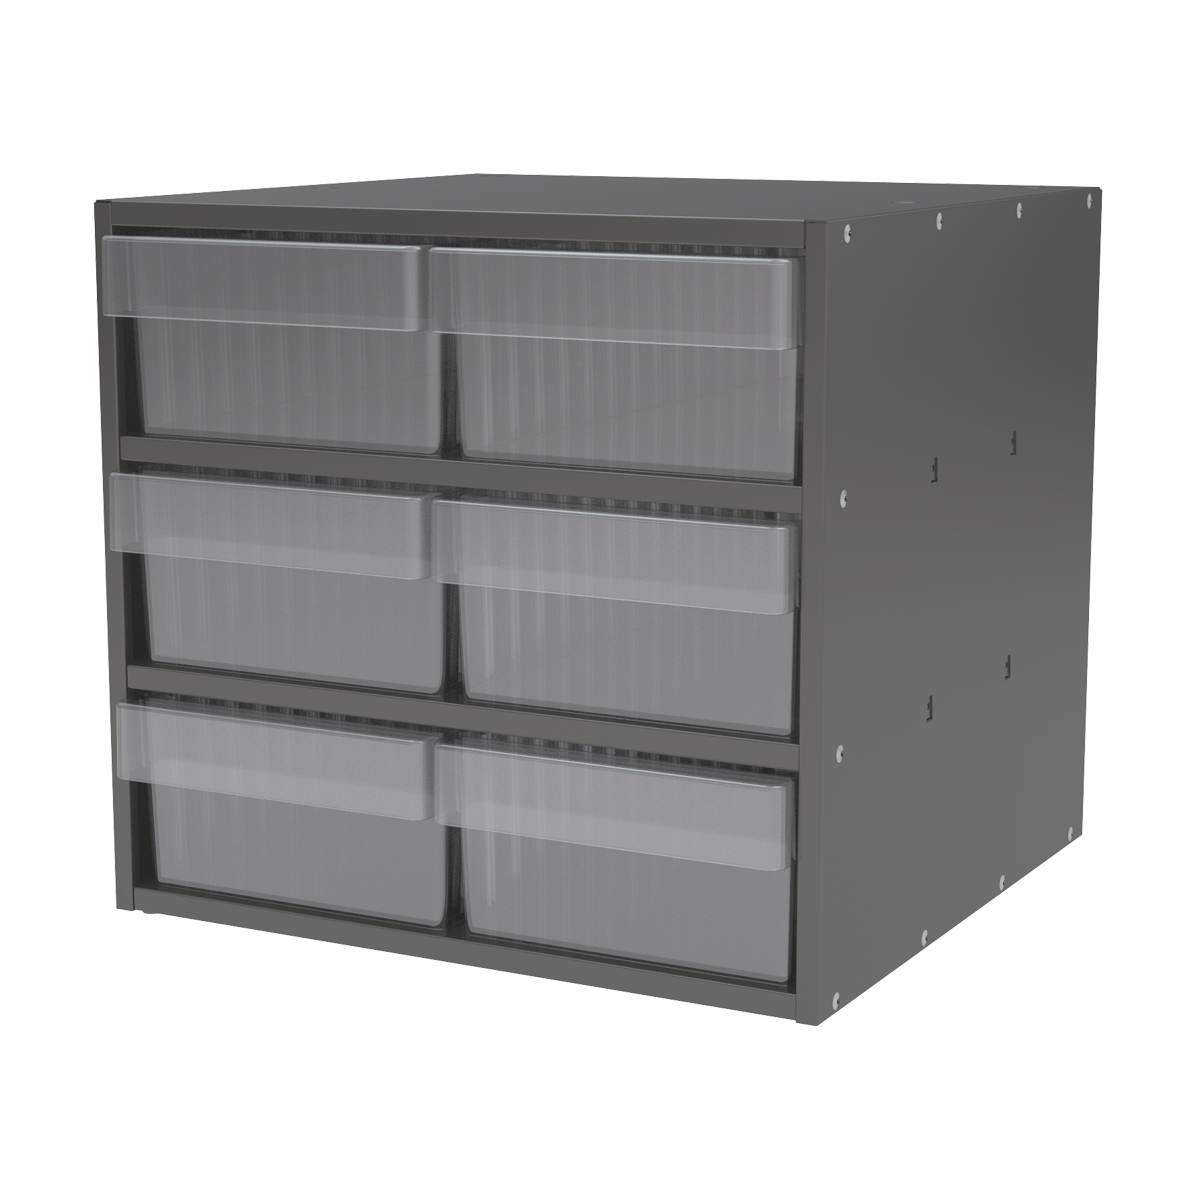 Item DISCONTINUED by Manufacturer.  Modular Cabinet, 18x17x16, 6 Drawers, Gray/Clear (AD1817C88CRY).  This item sold in carton quantities of 1.